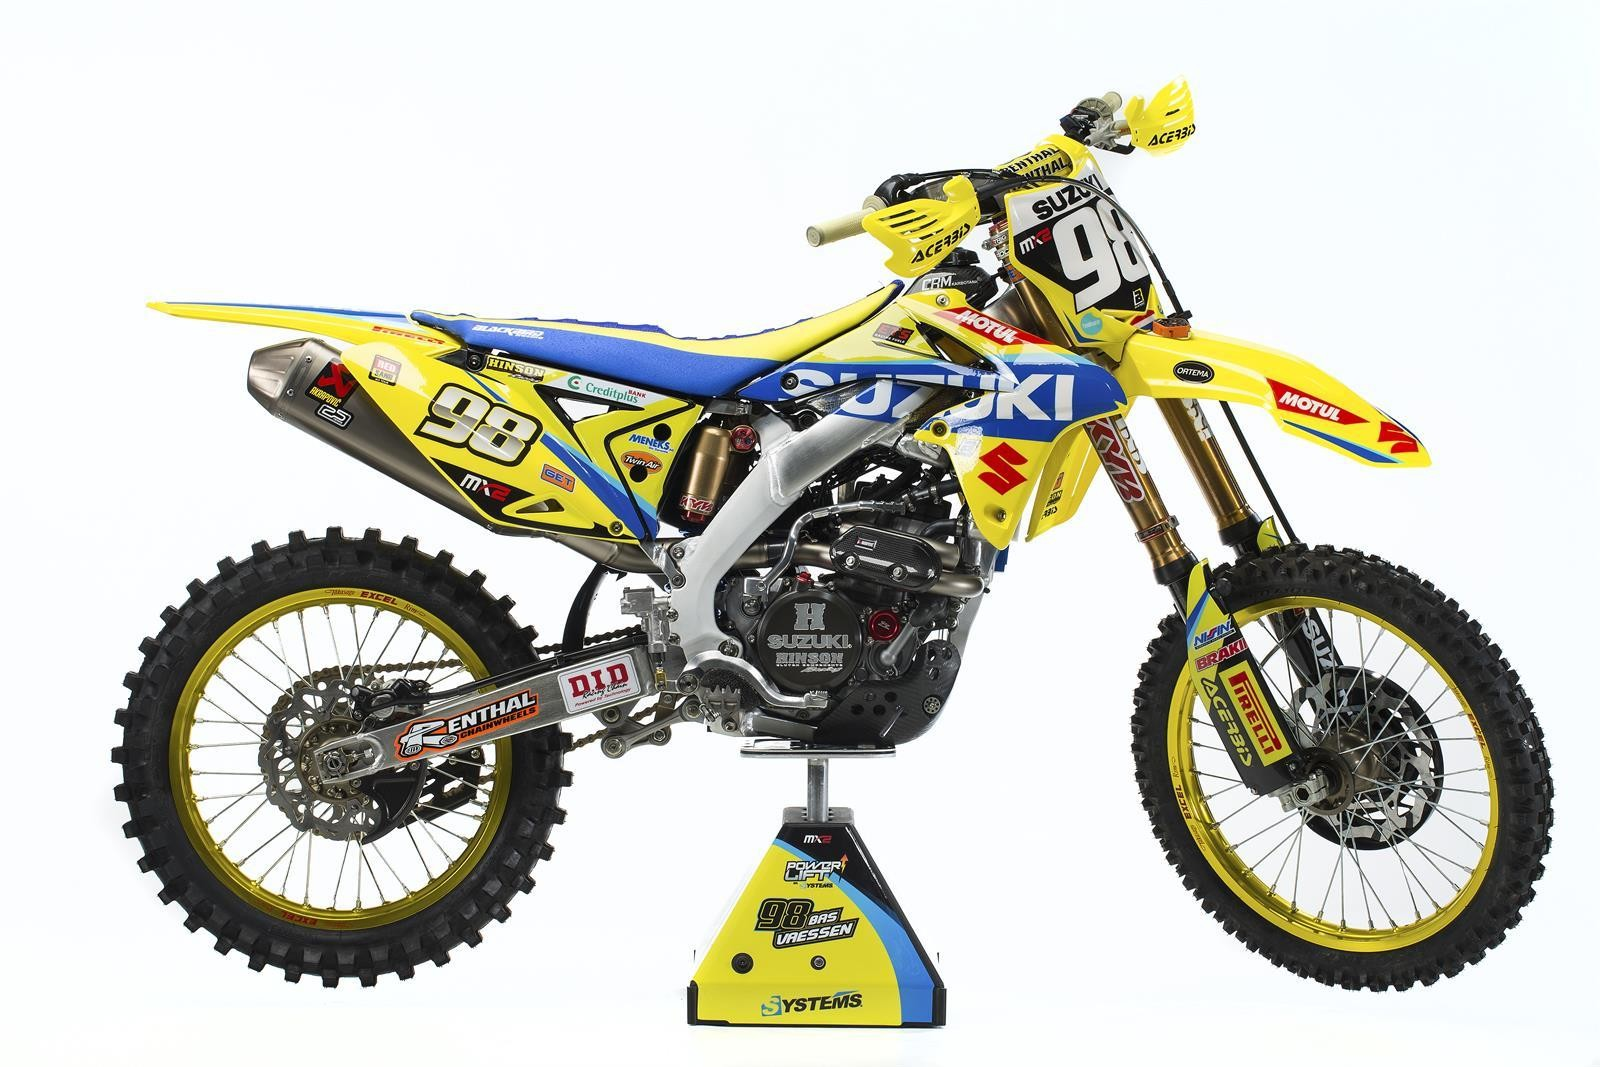 Bas Vaessen's 2017 Suzuki World MX2 RM-Z250 - First Look: 2017 Suzuki World MX2 Team - Motocross Pictures - Vital MX